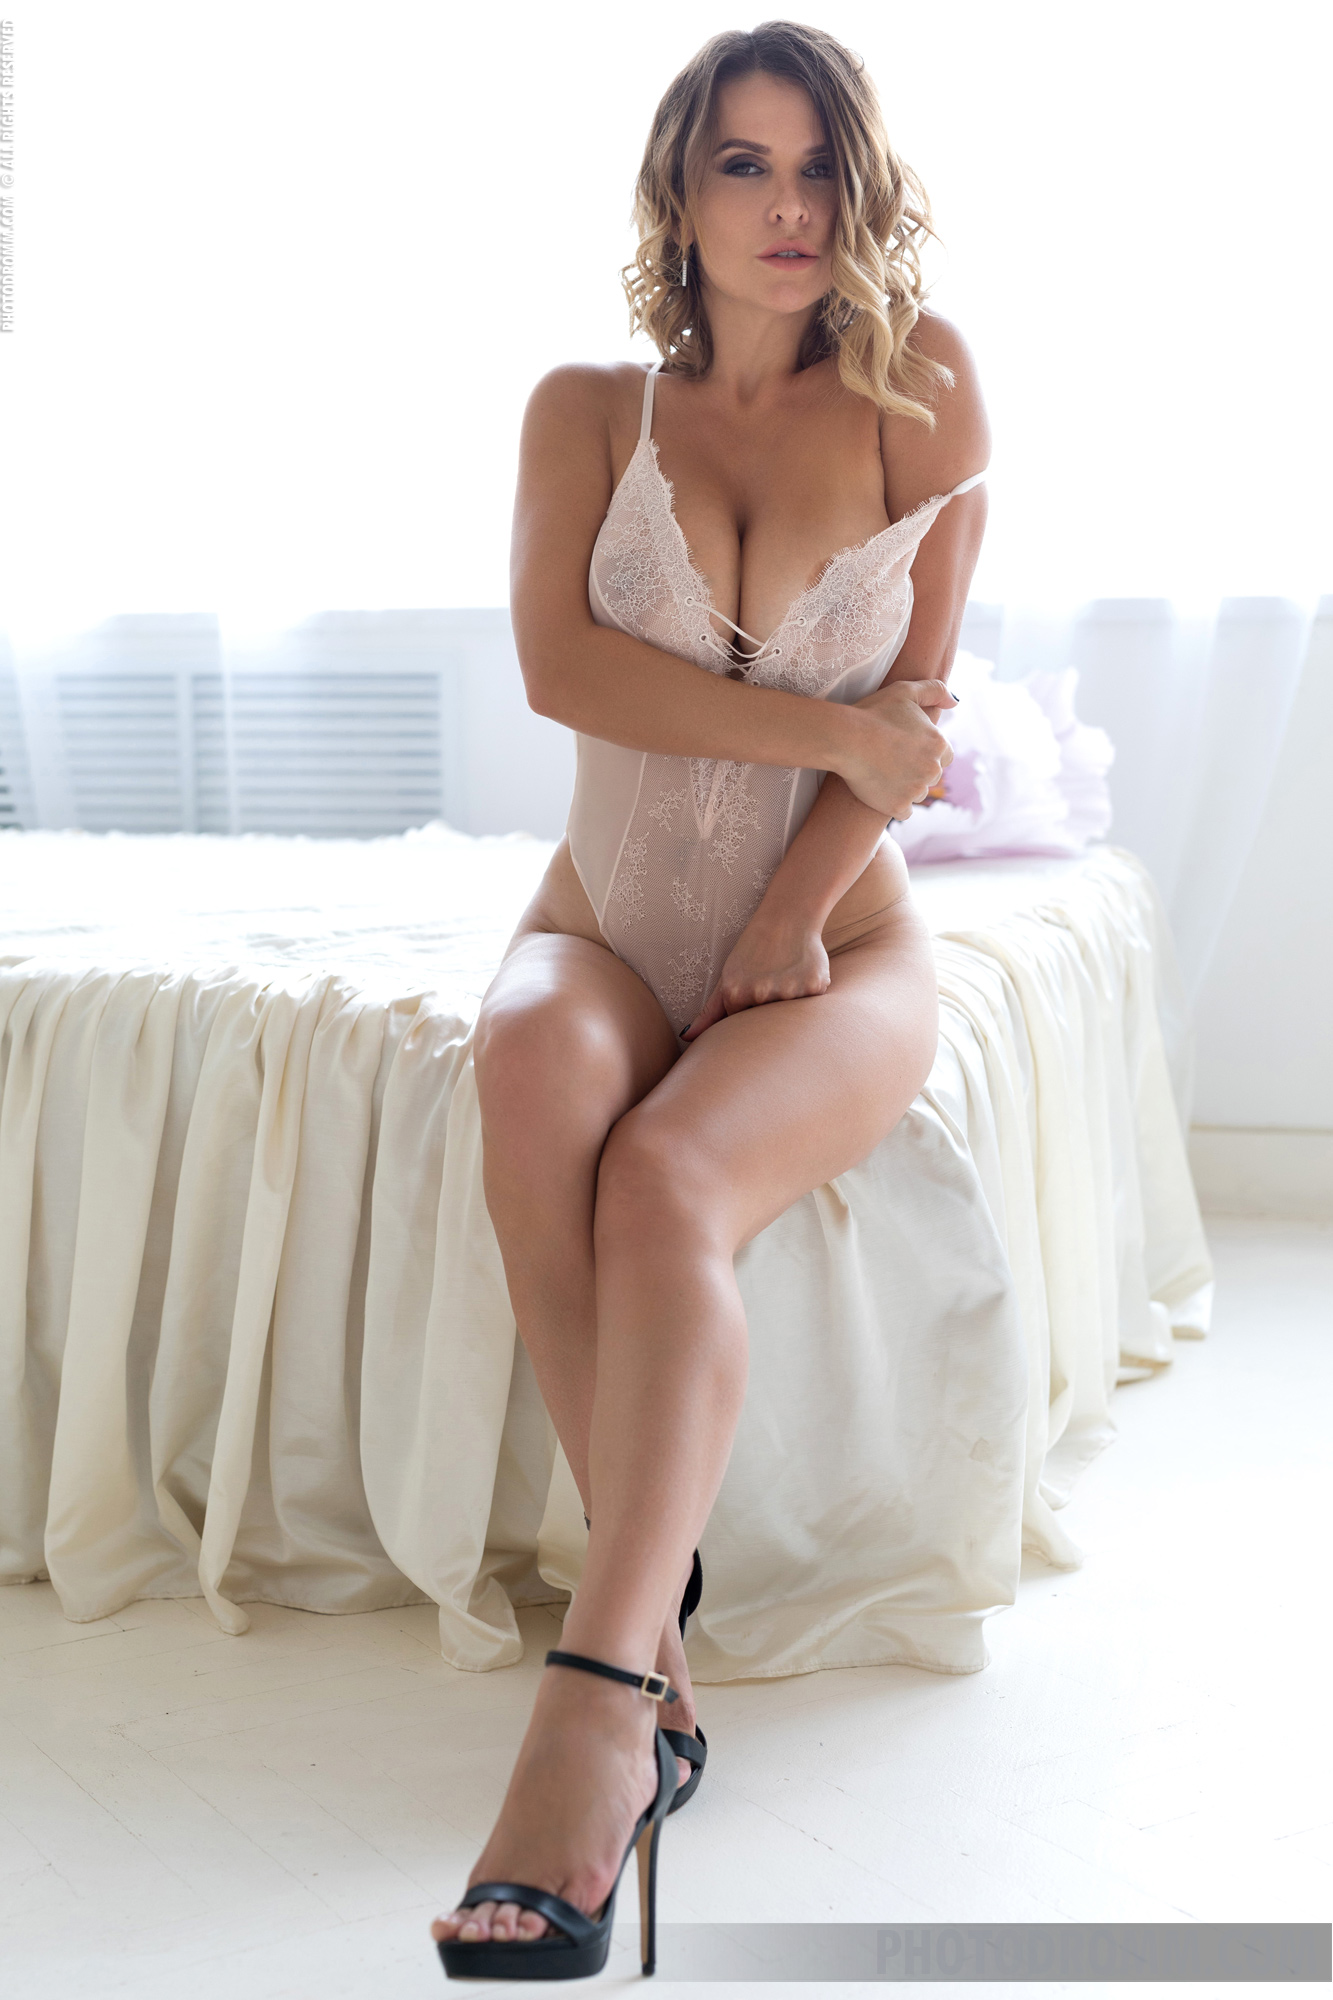 Sharona Big Toit Blonde in Sexy White Lingerie for Photodromm